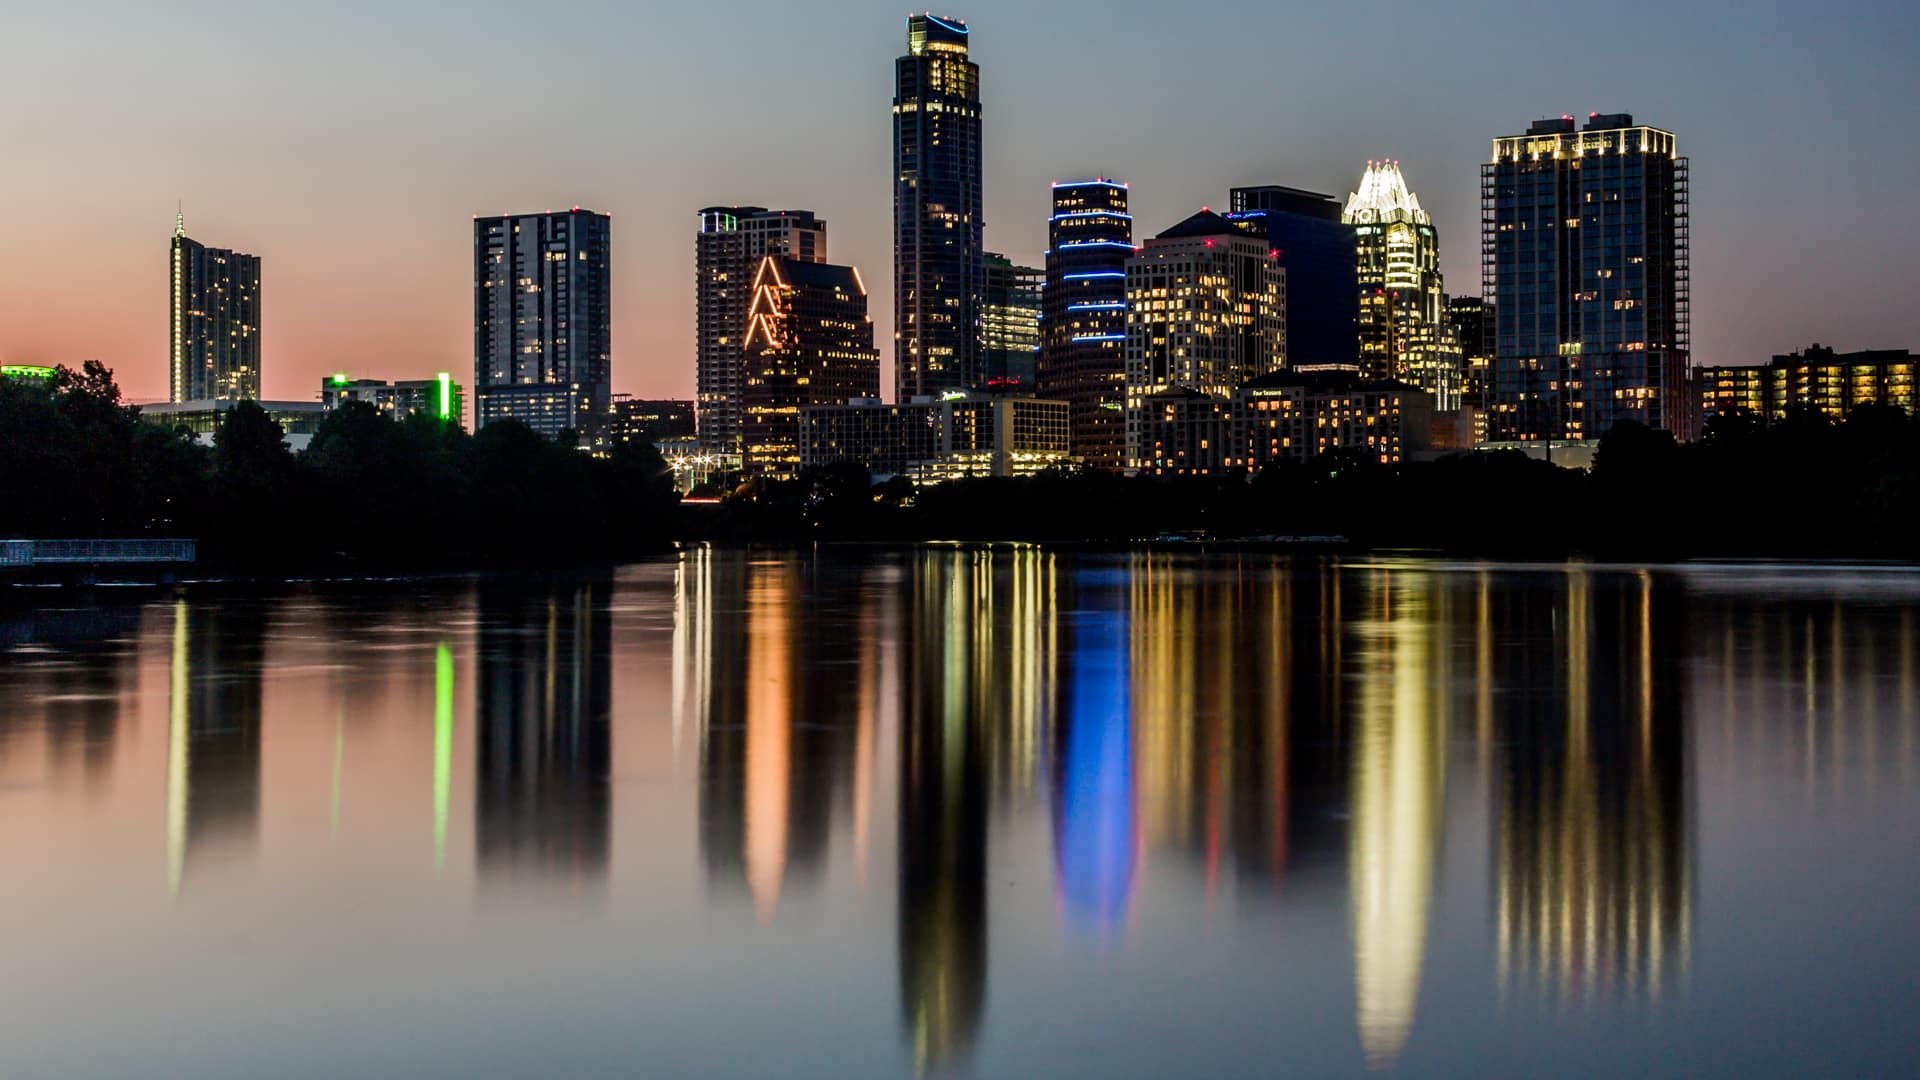 Meetings and Corporate Events in Austin, TX: Let's Get Weird